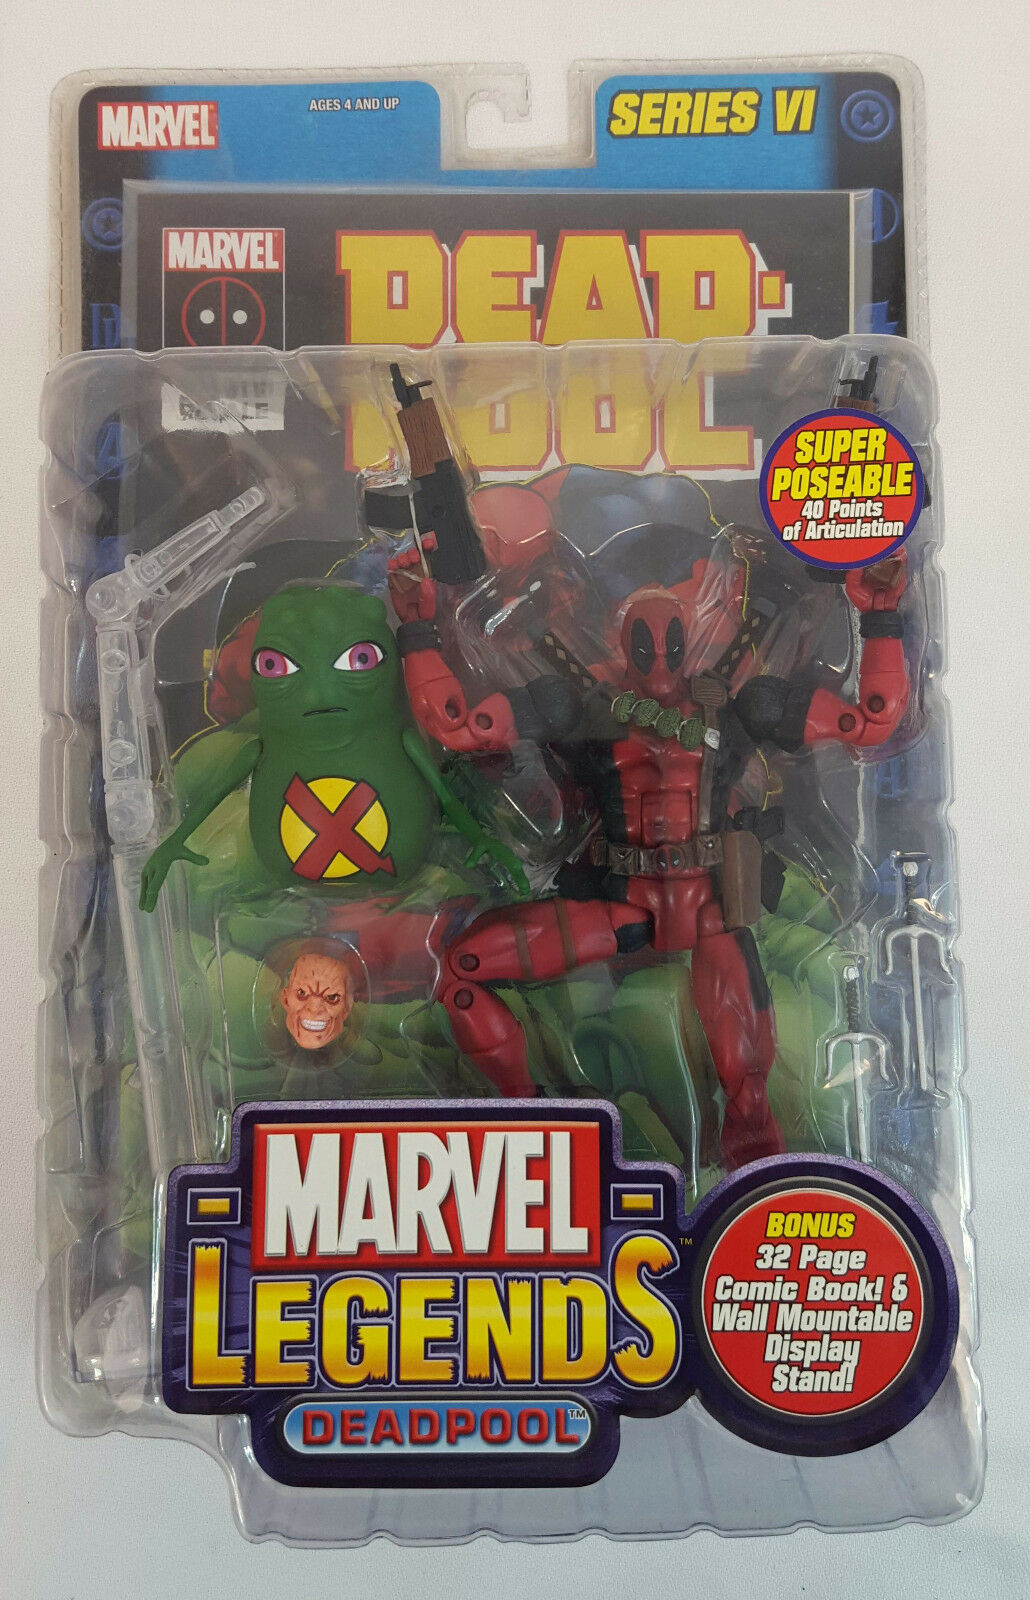 2004 Toy Biz MARVEL LEGENDS Series VI 6 DEADPOOL Action Figure w DOOP & Comic